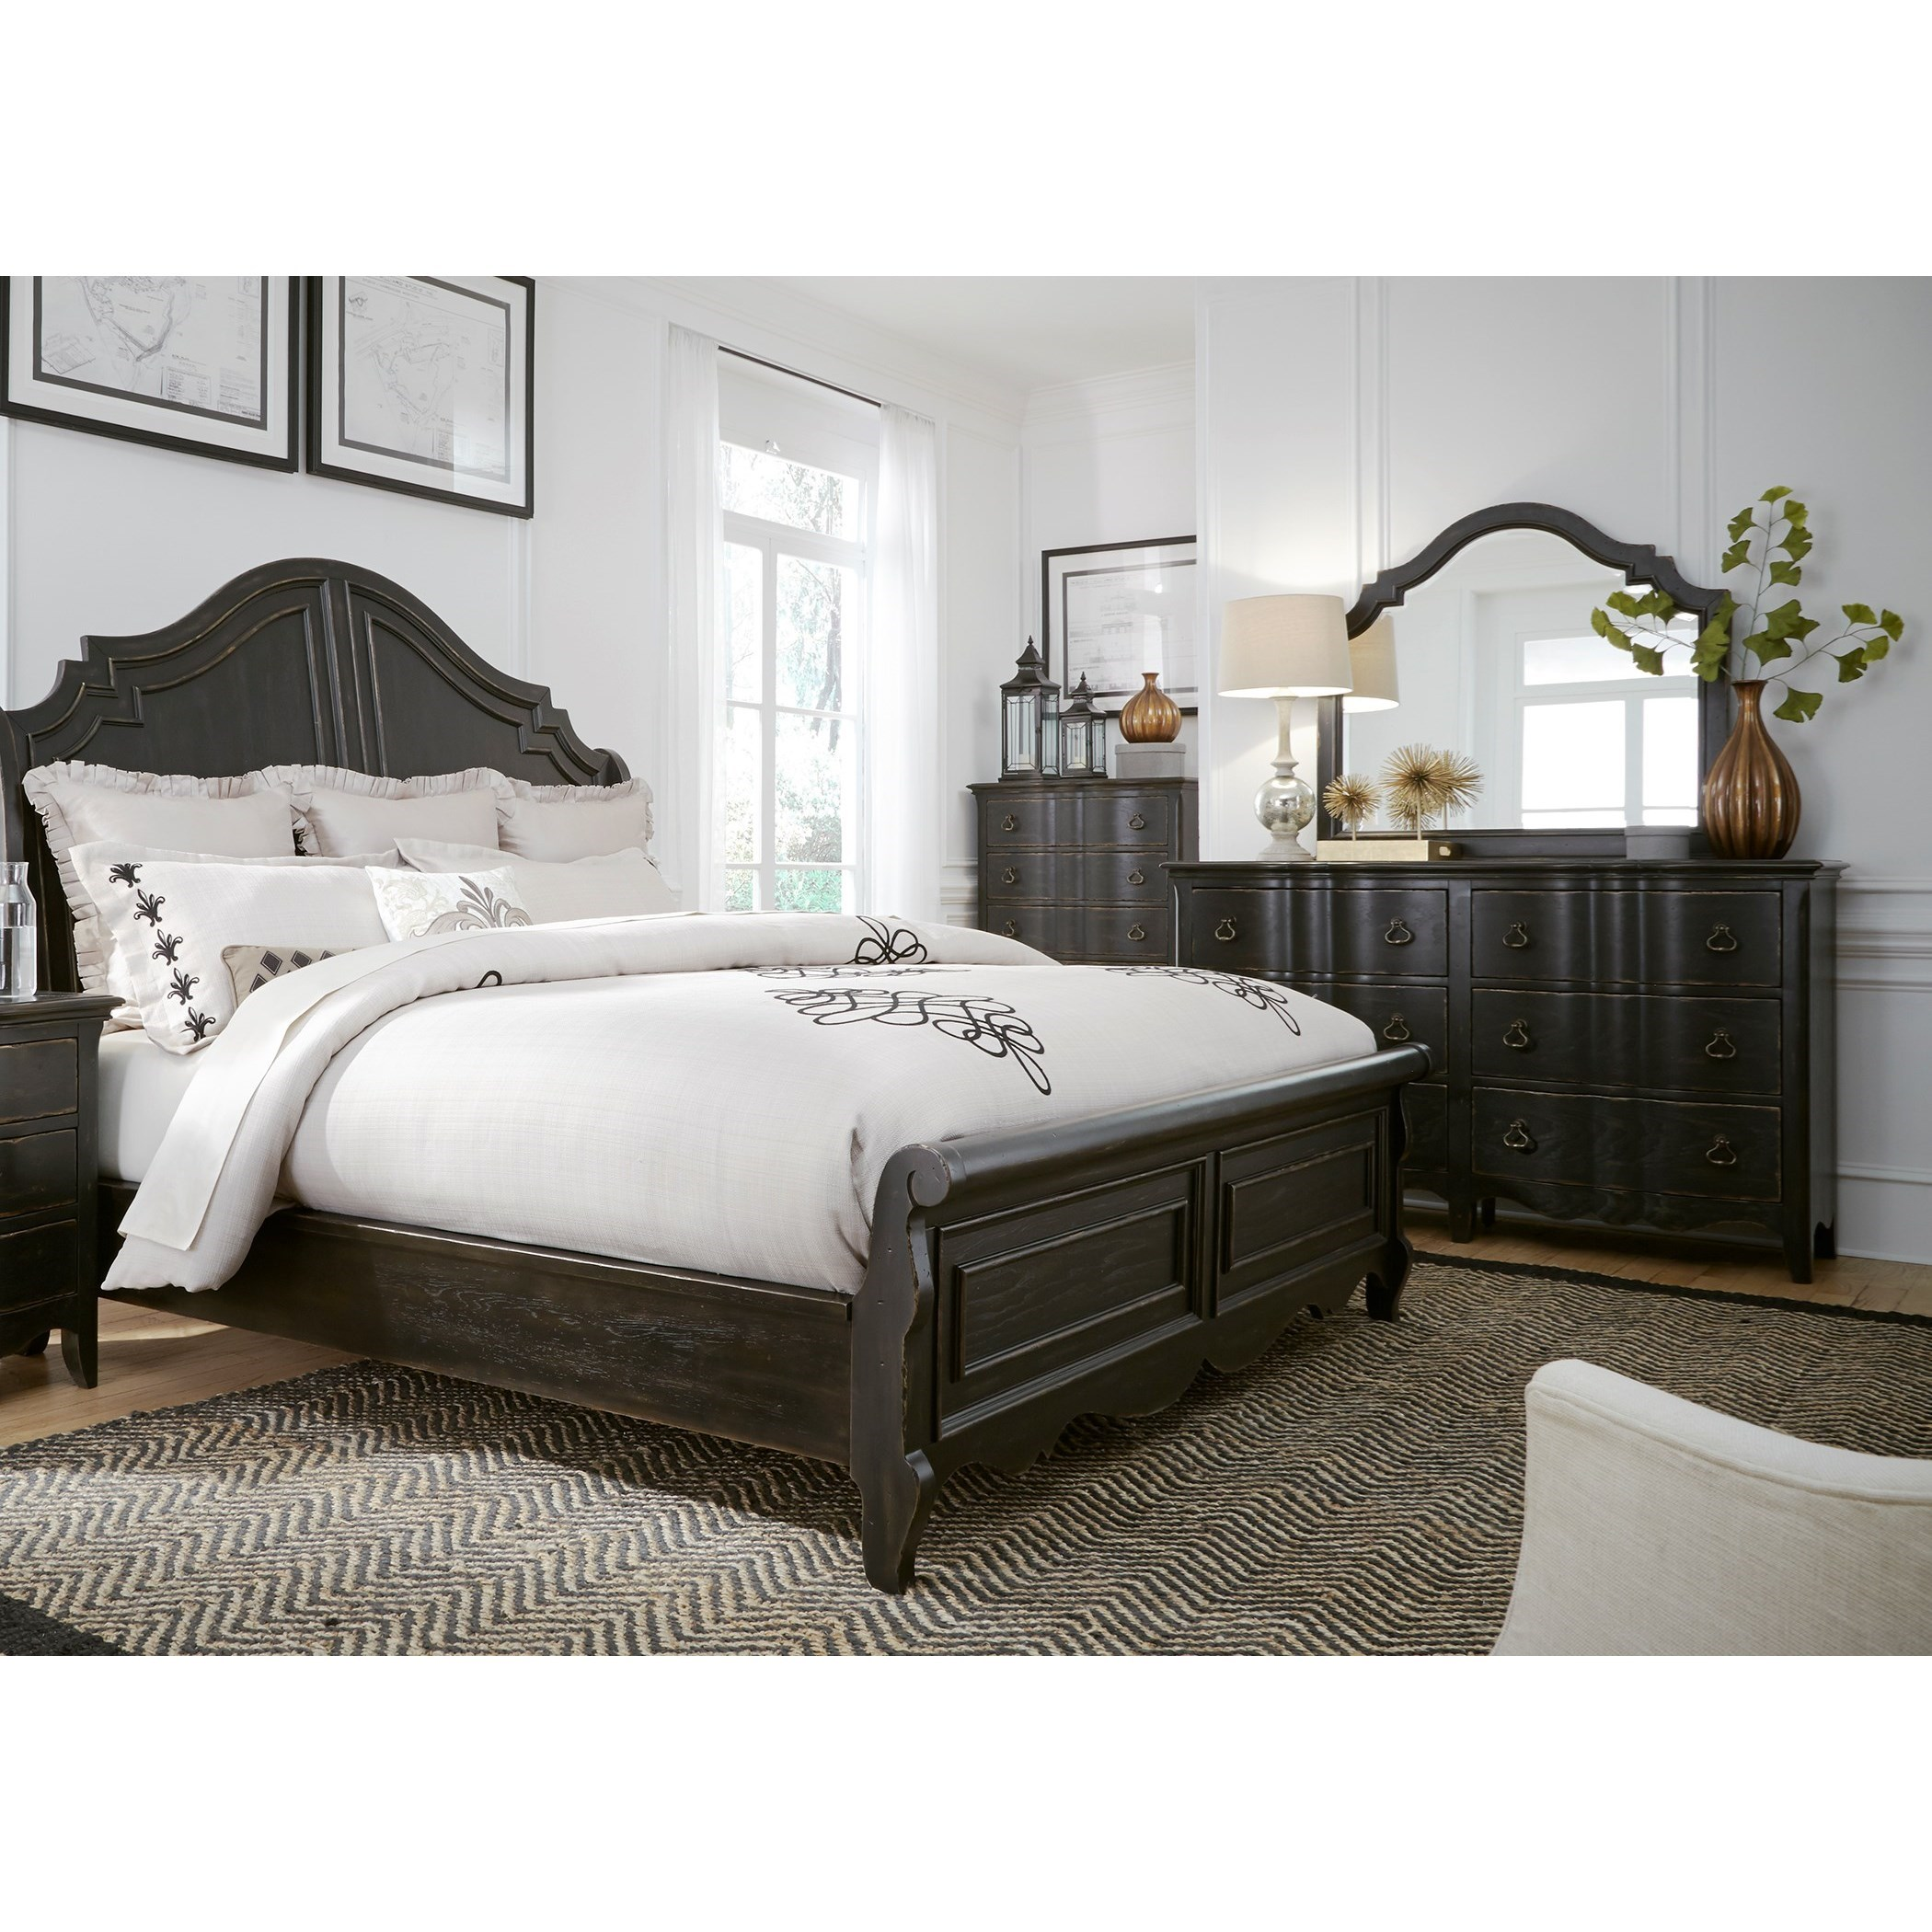 Chesapeake King Bedroom Group by Liberty Furniture at Standard Furniture